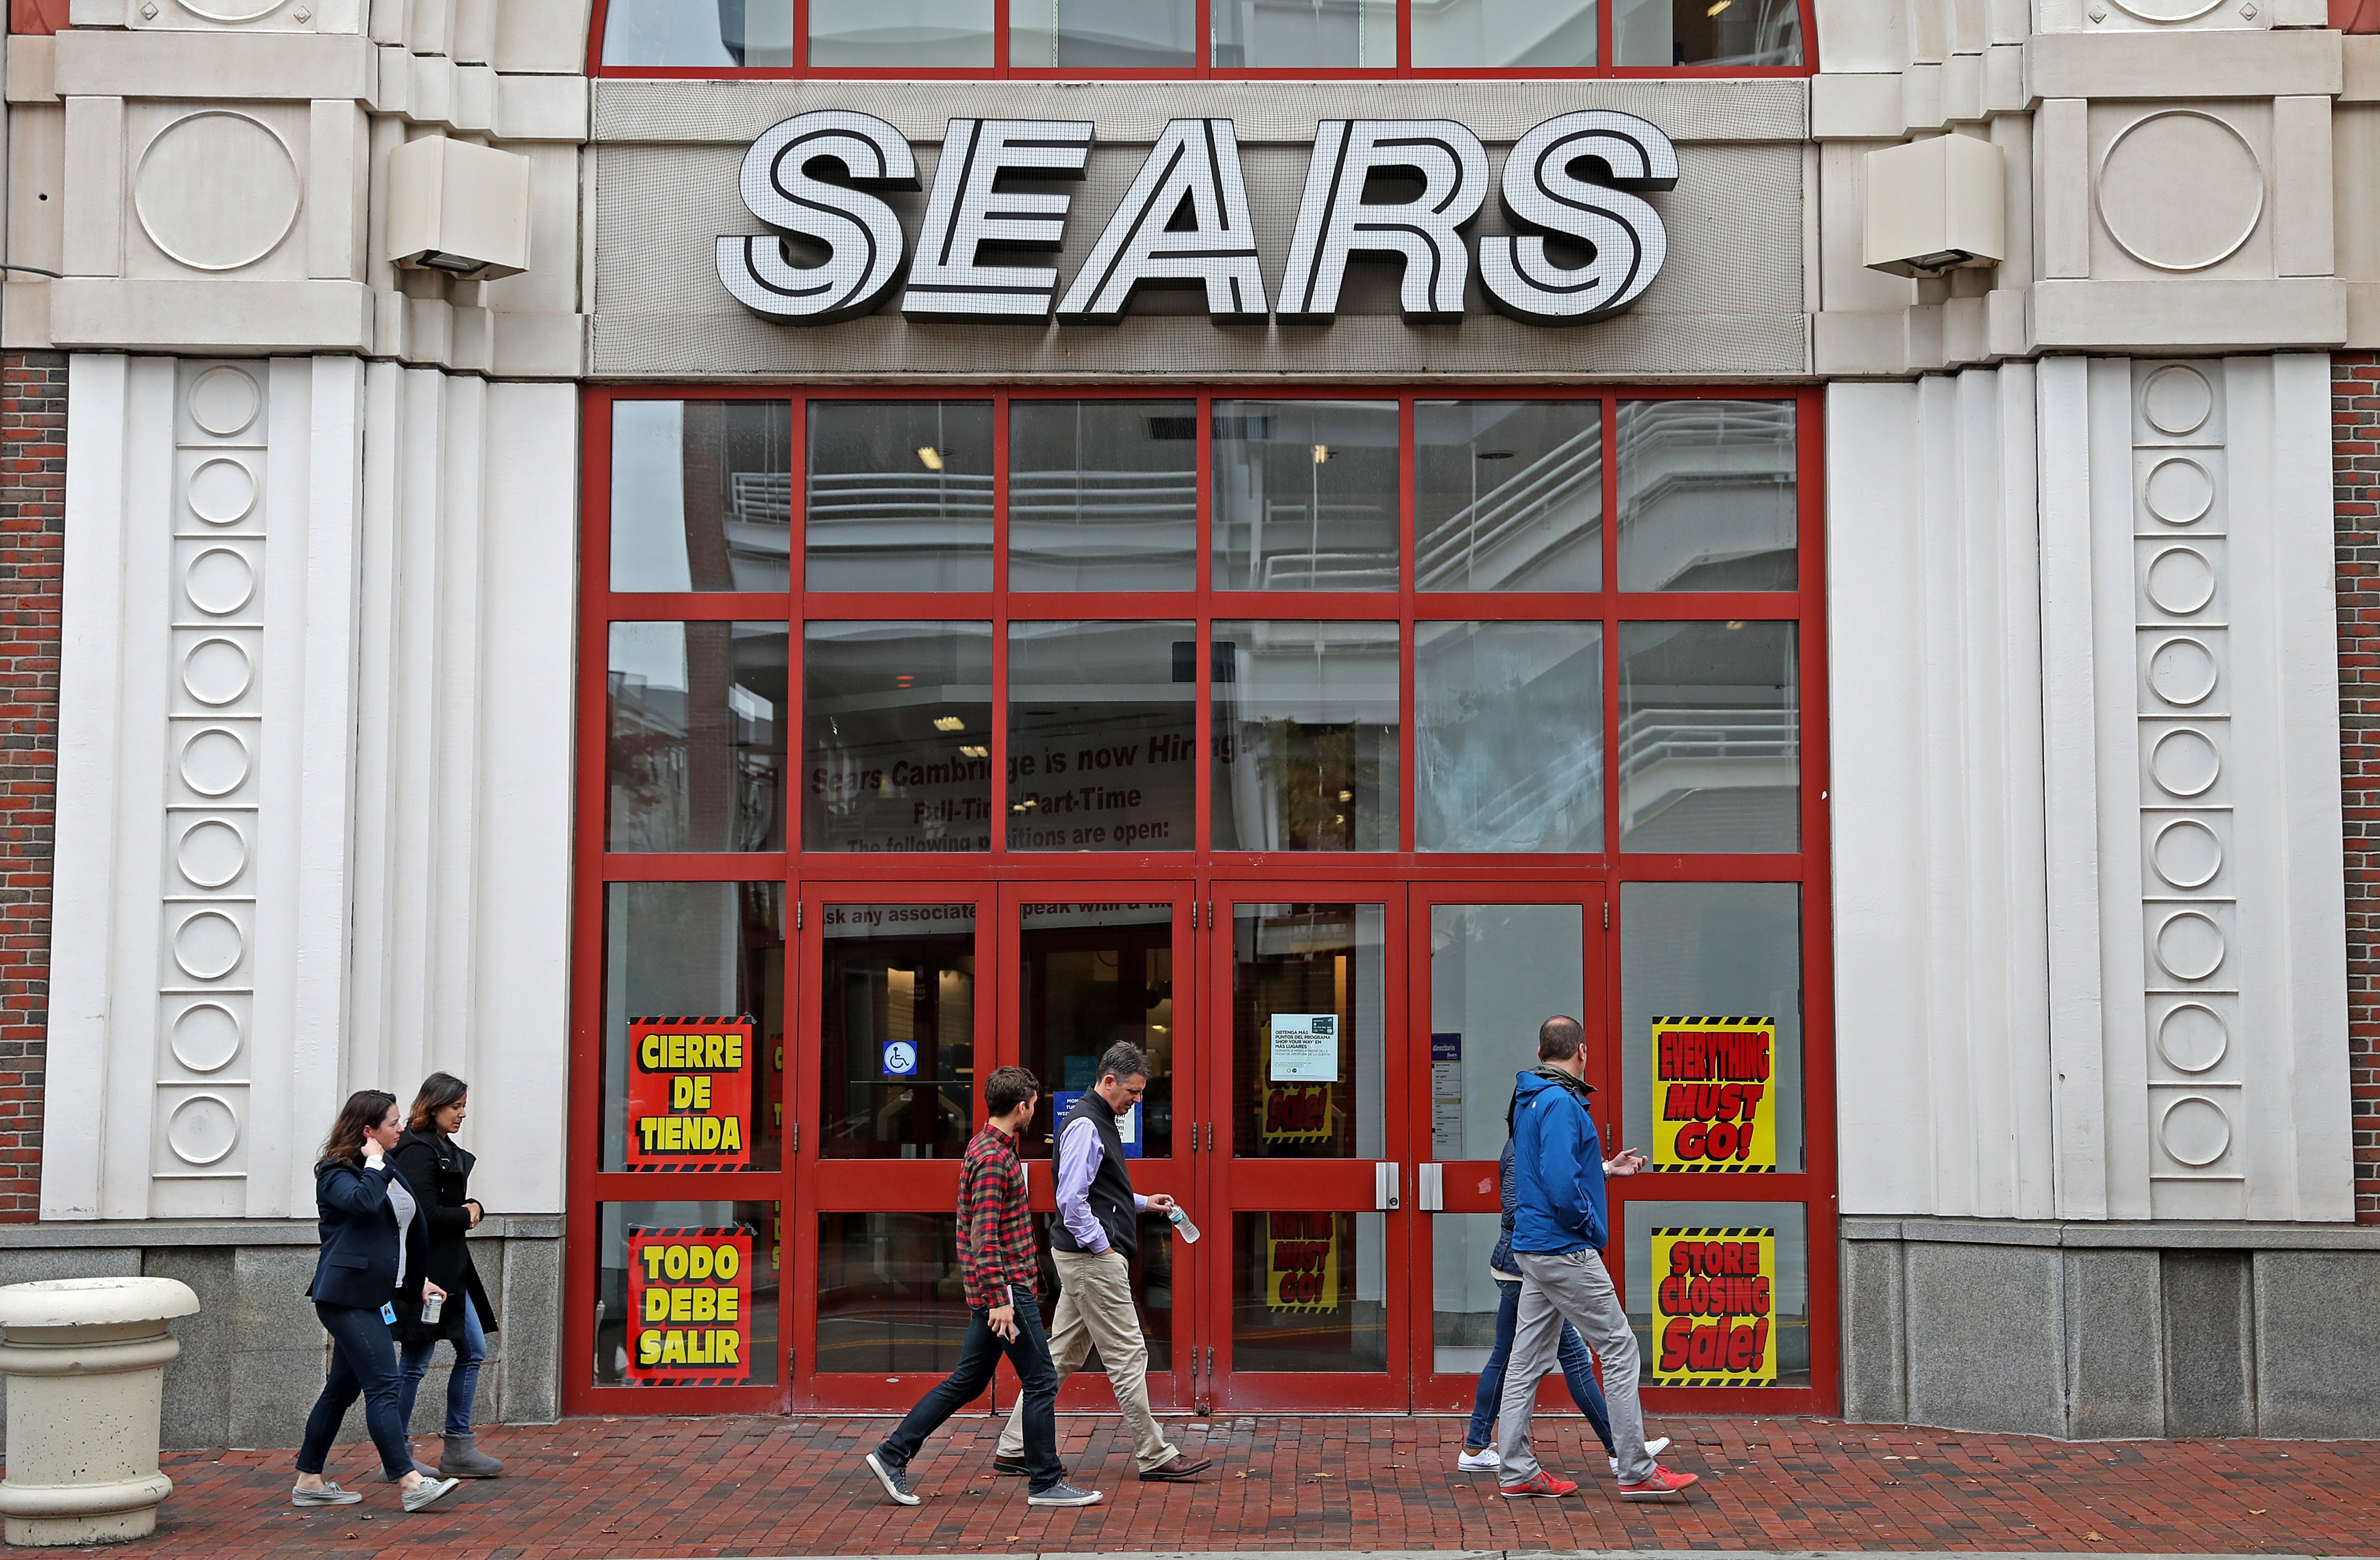 Sears' future is still in doubt a year after bankruptcy filing